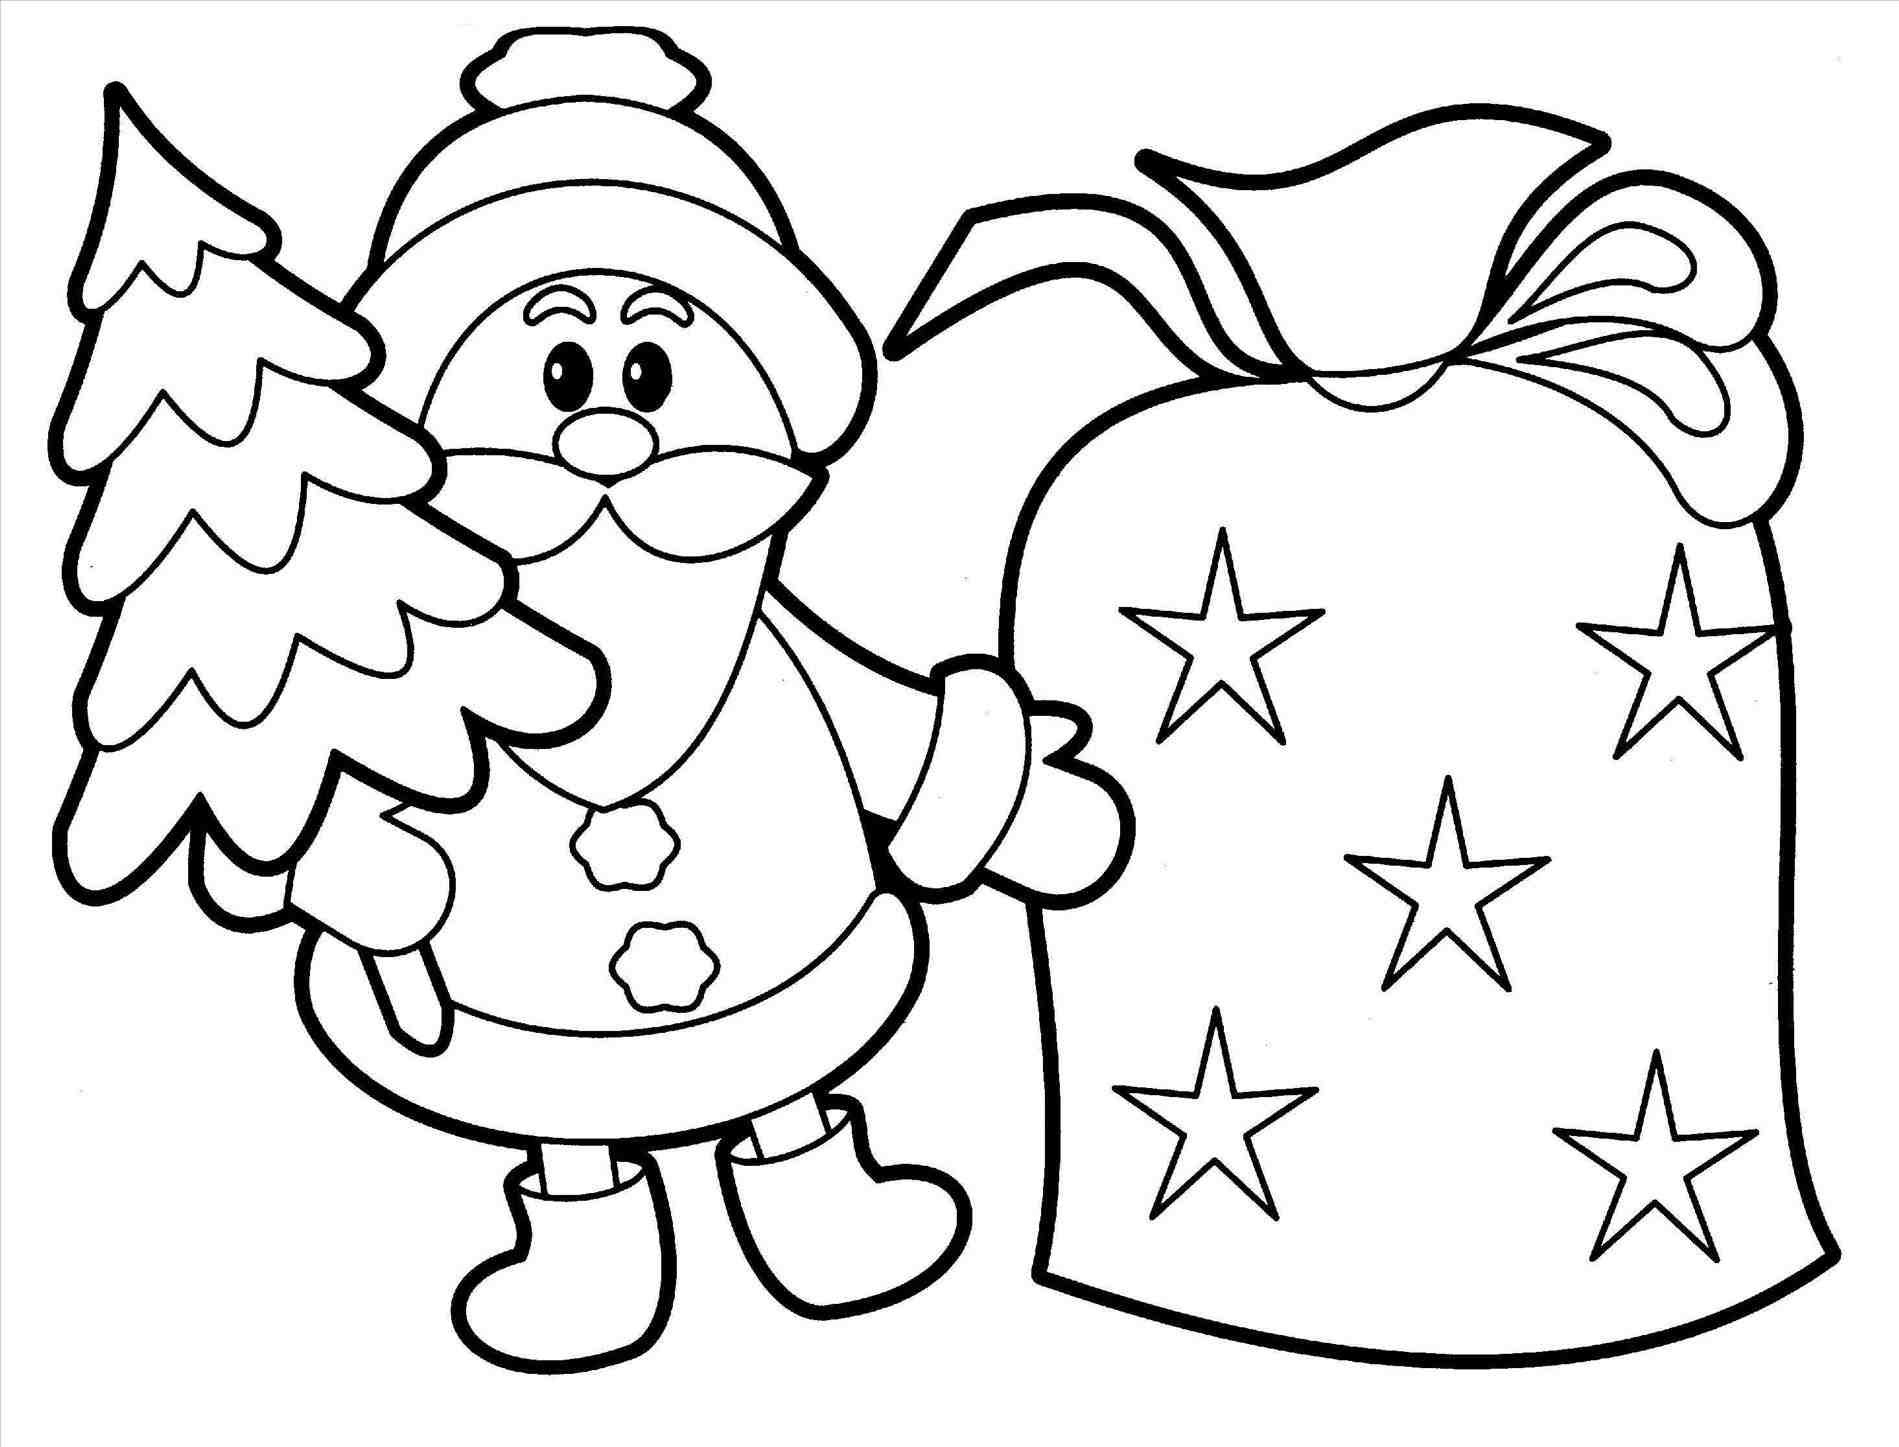 The Best Free Greeting Coloring Page Images Download From